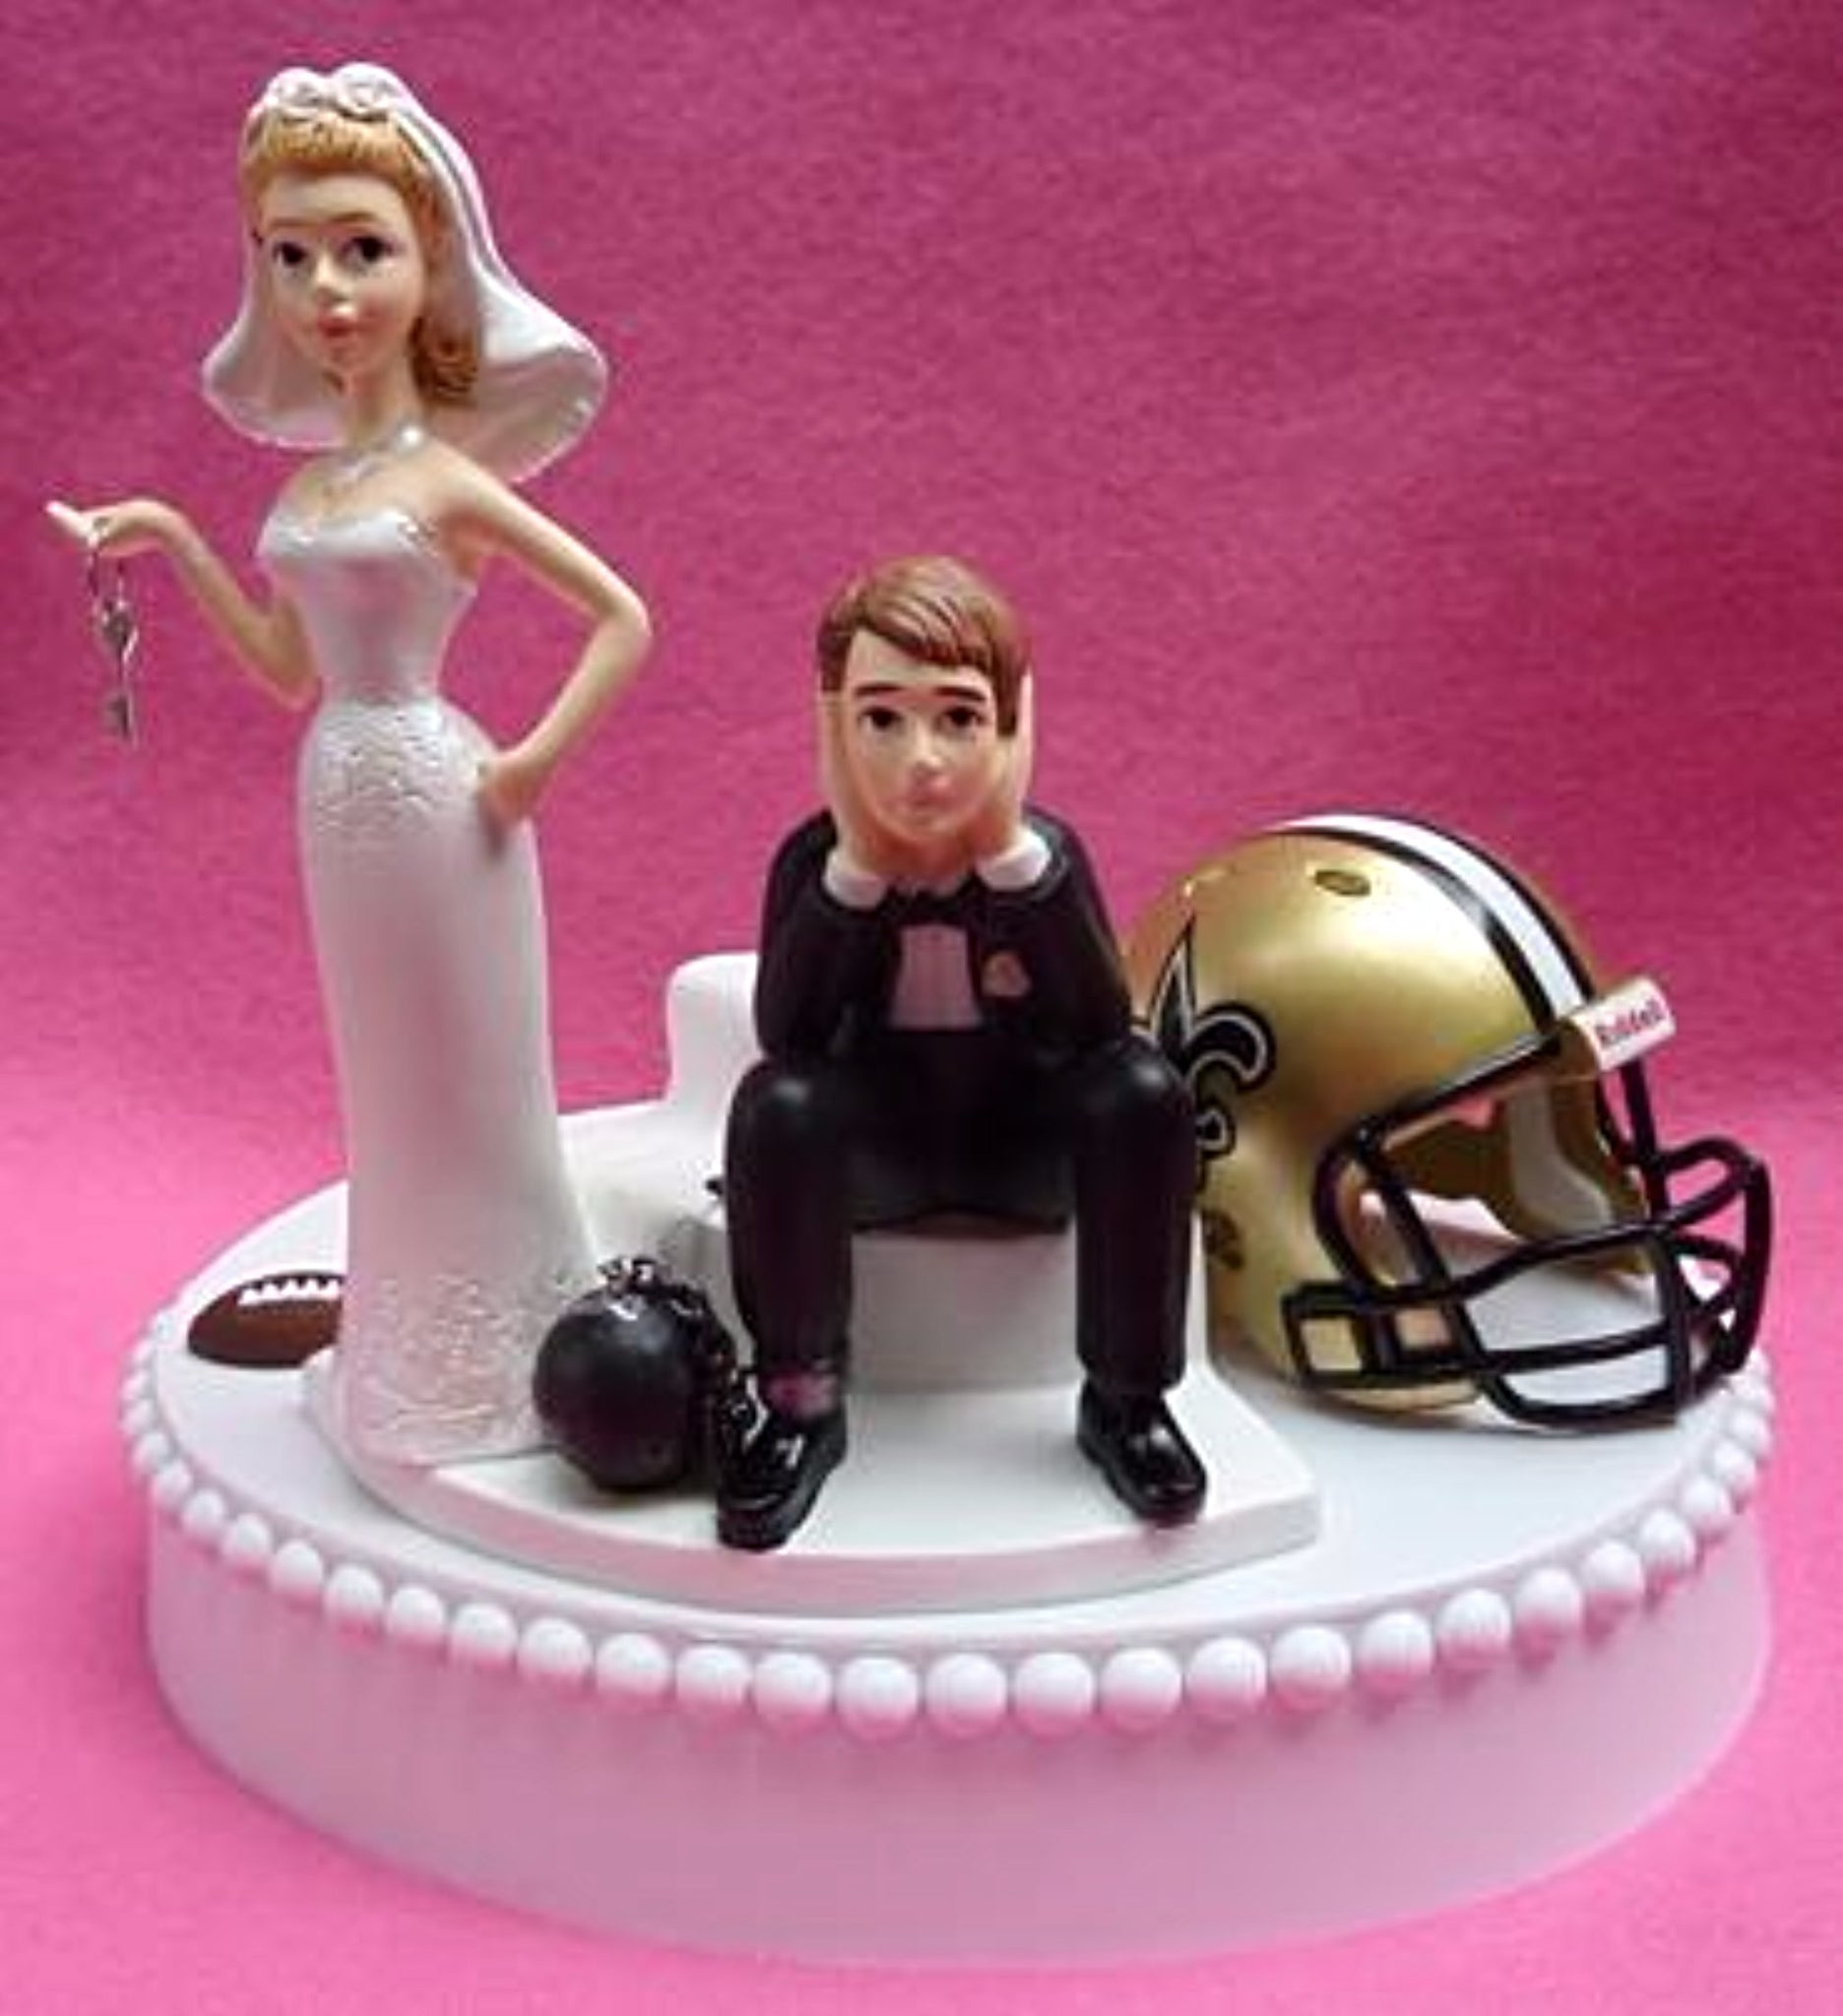 Wedding Cake Topper - New Orleans Saints Football Themed Key